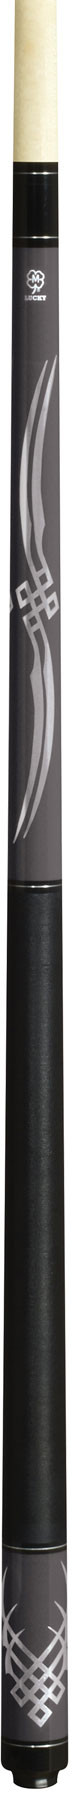 Lucky Pool Cue, L61, Grey